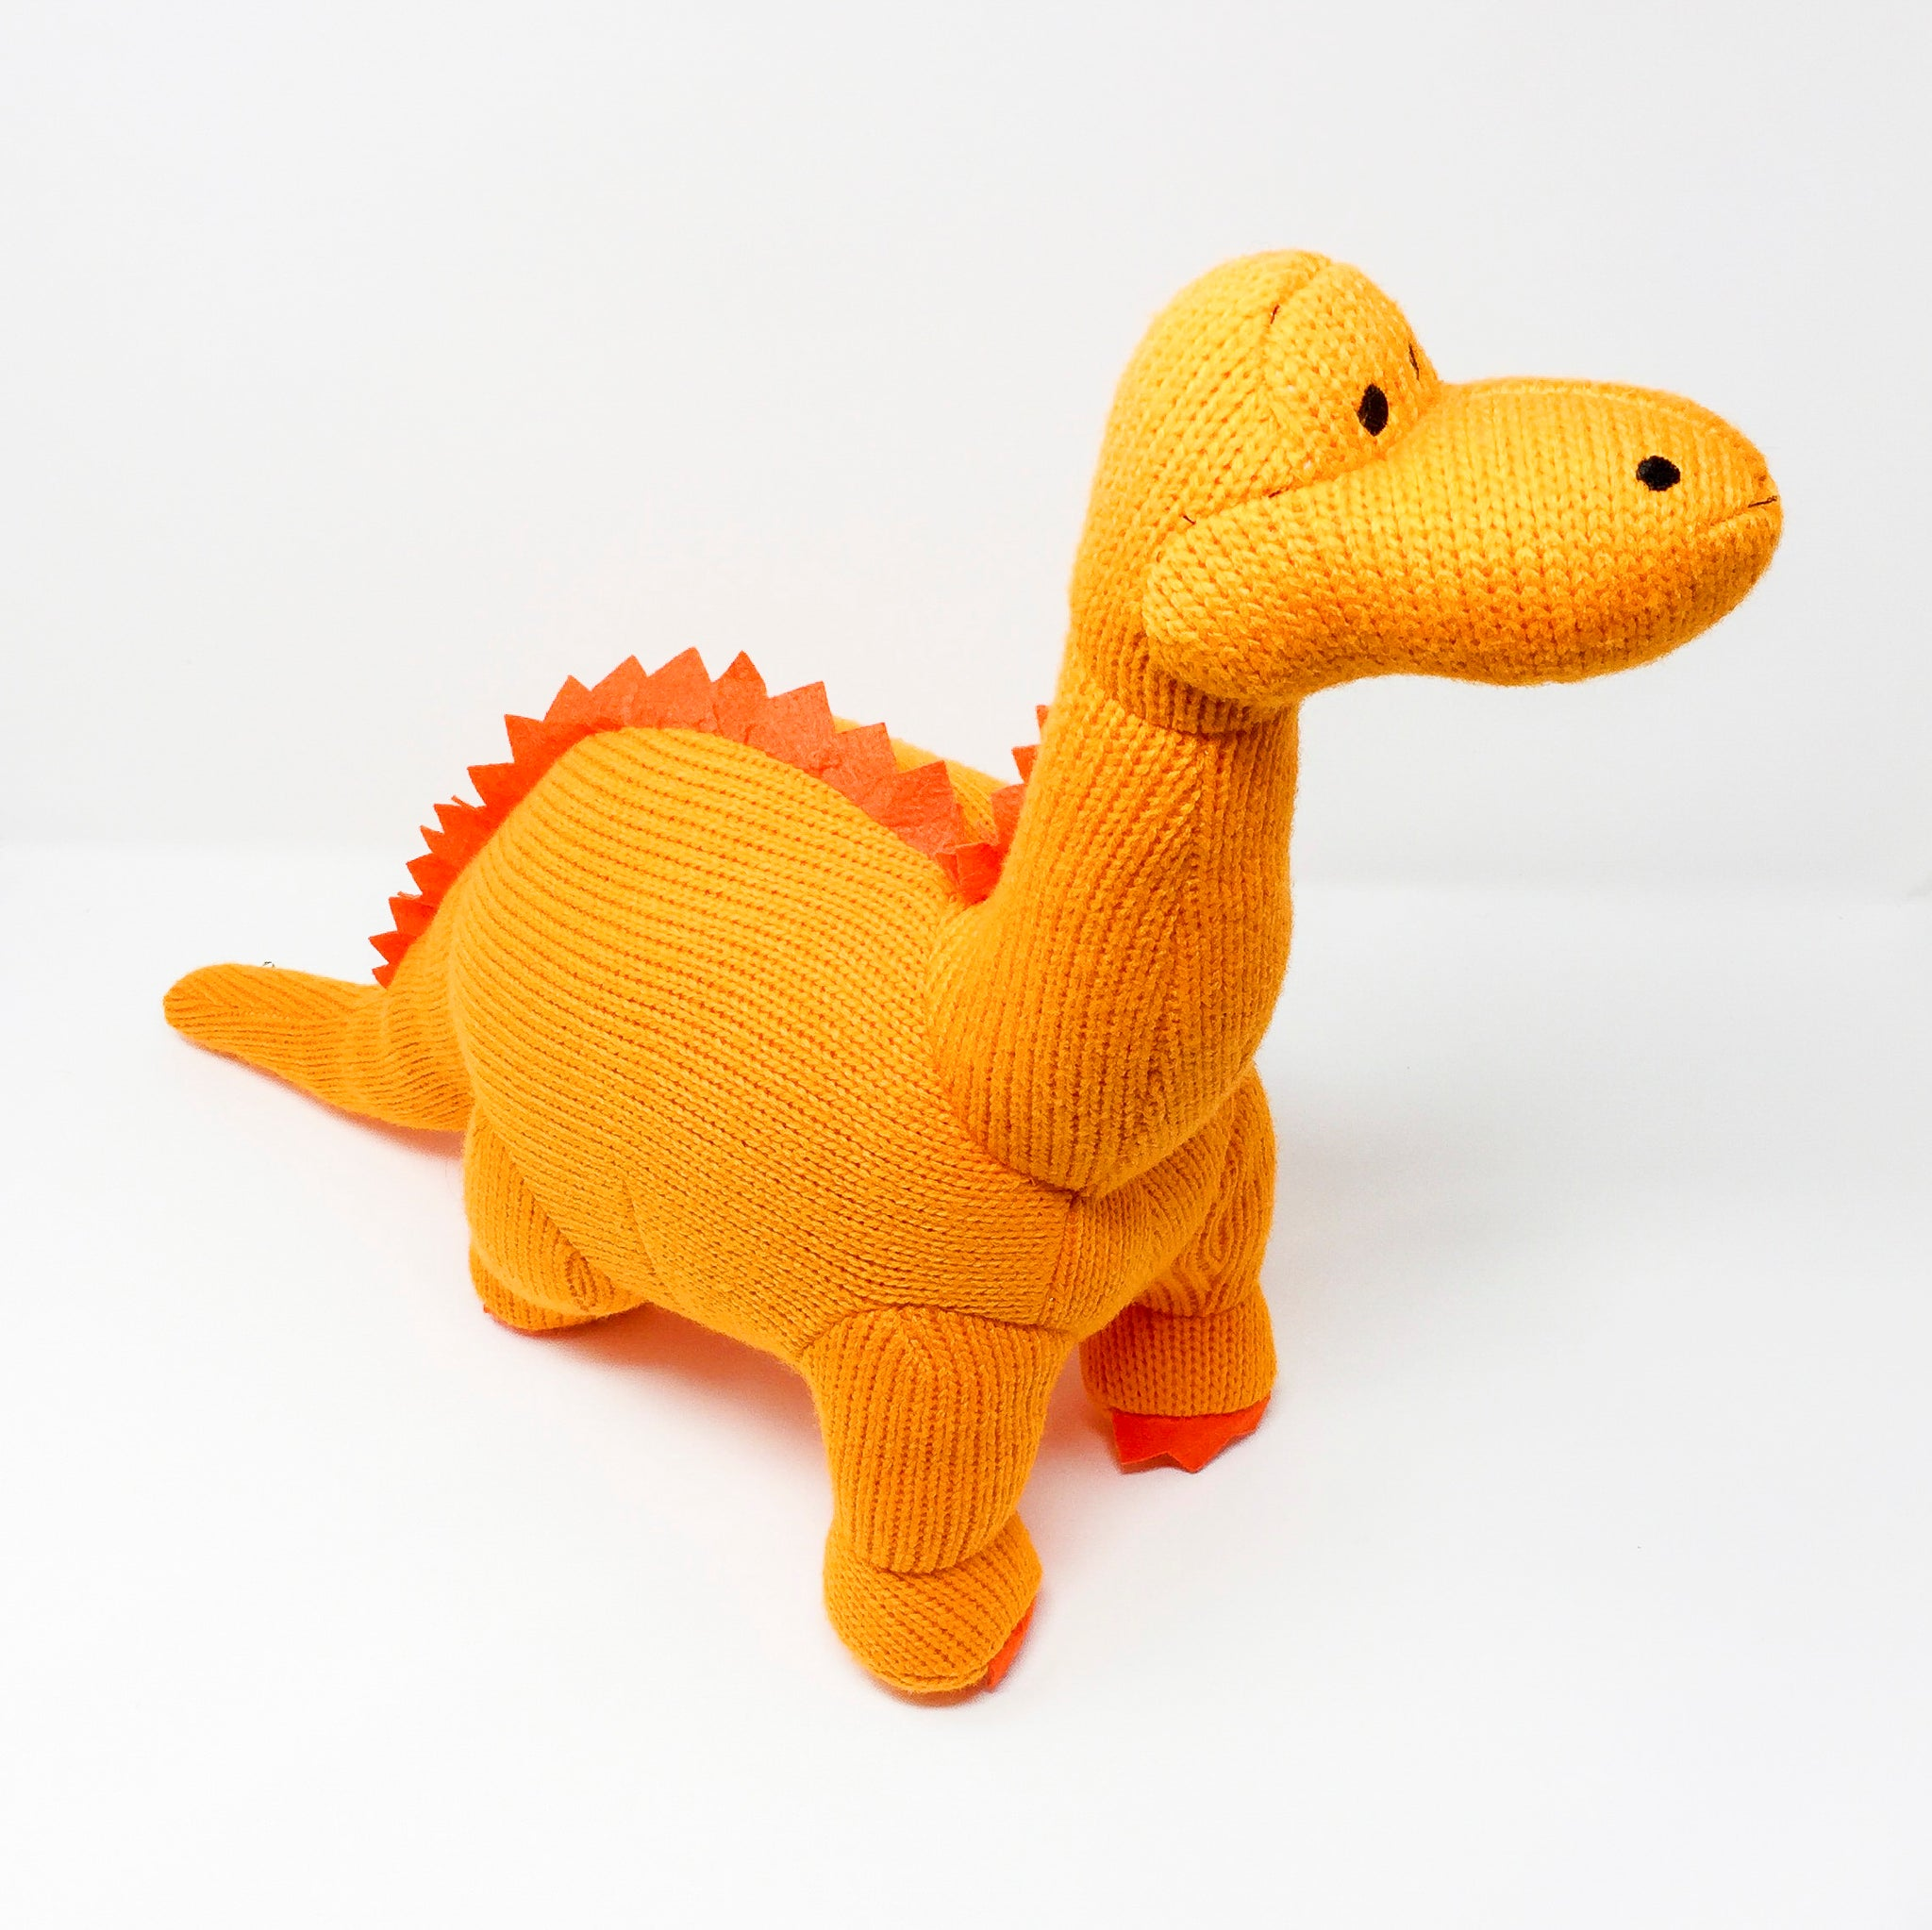 Dippy the Knitted Dinosaur – Large – ToyDrop